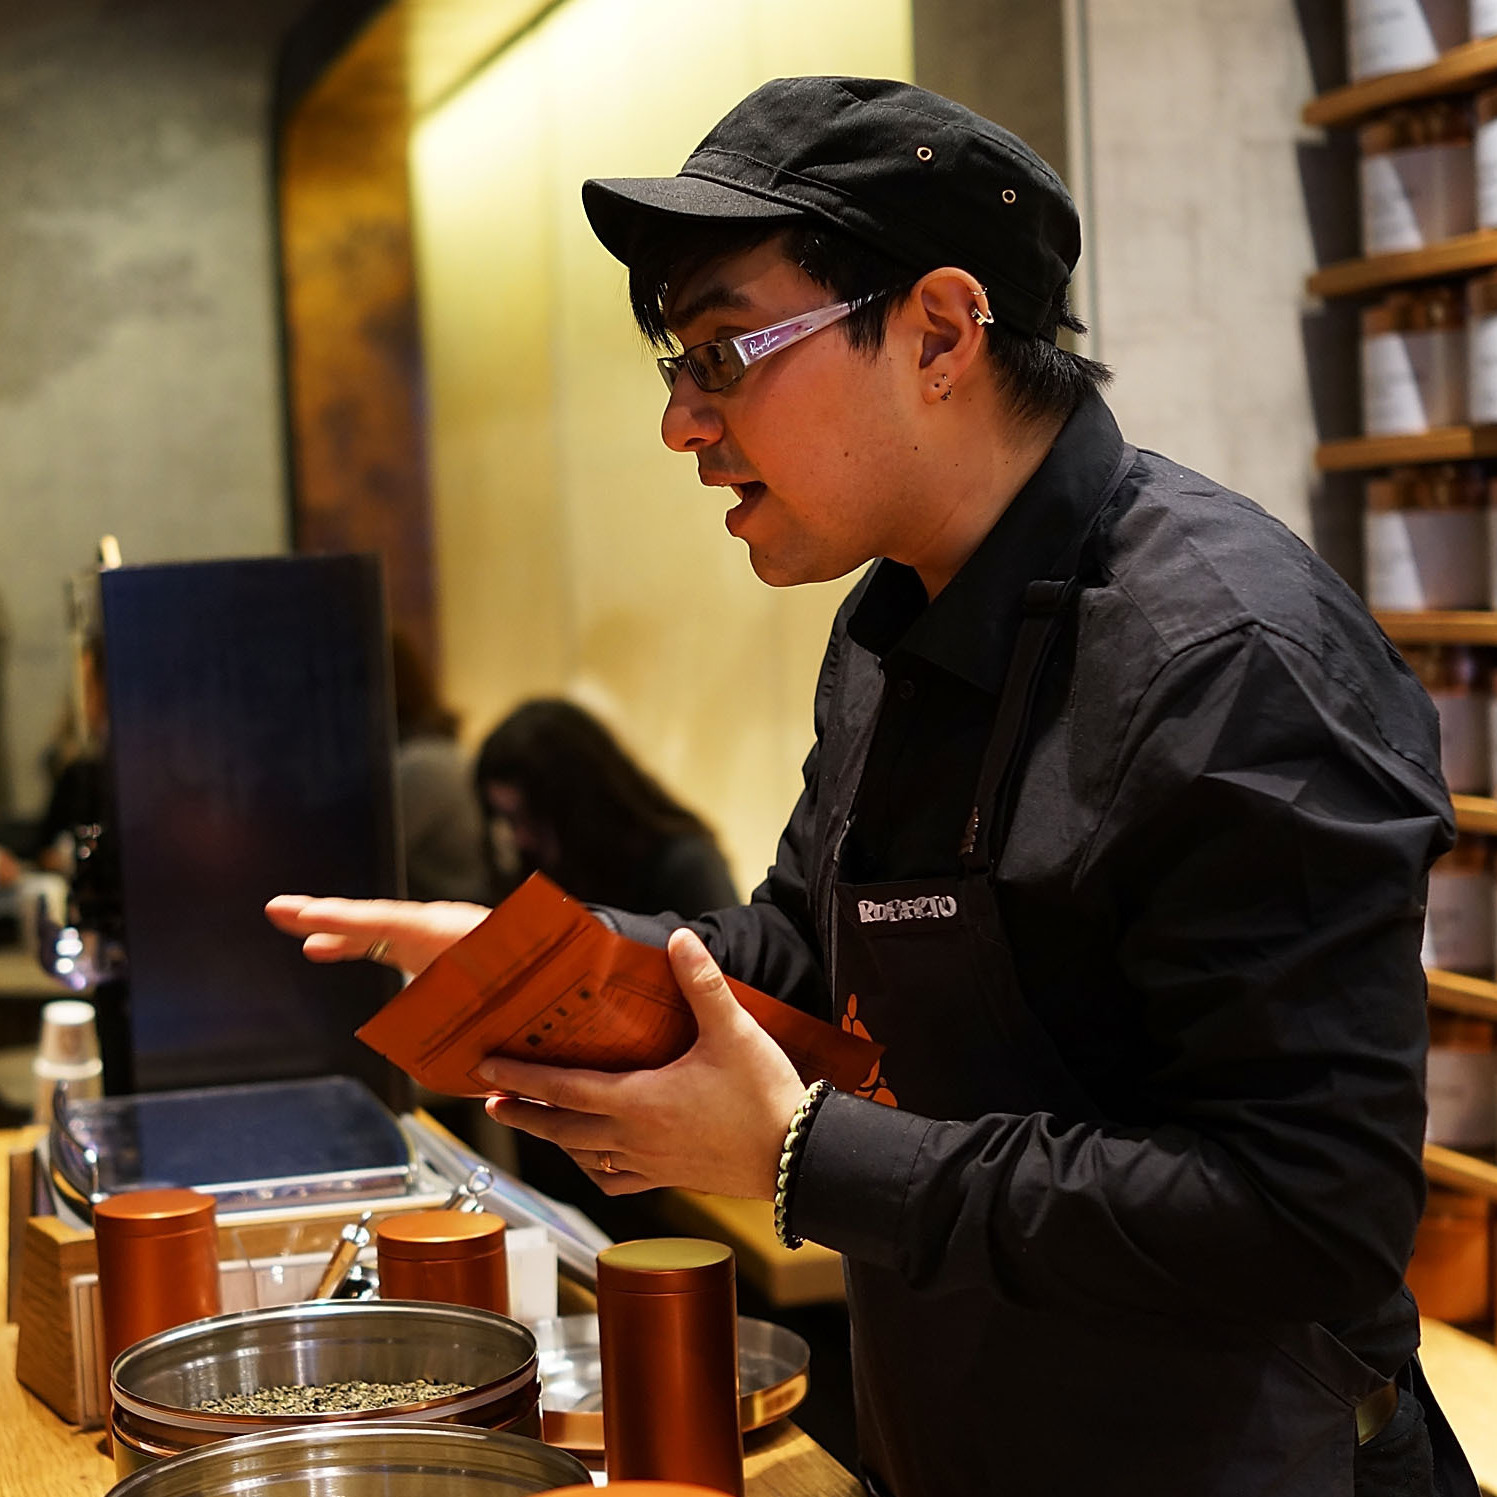 Tea is served at the newly opened, Starbucks-owned Teavana tea bar in New York City.